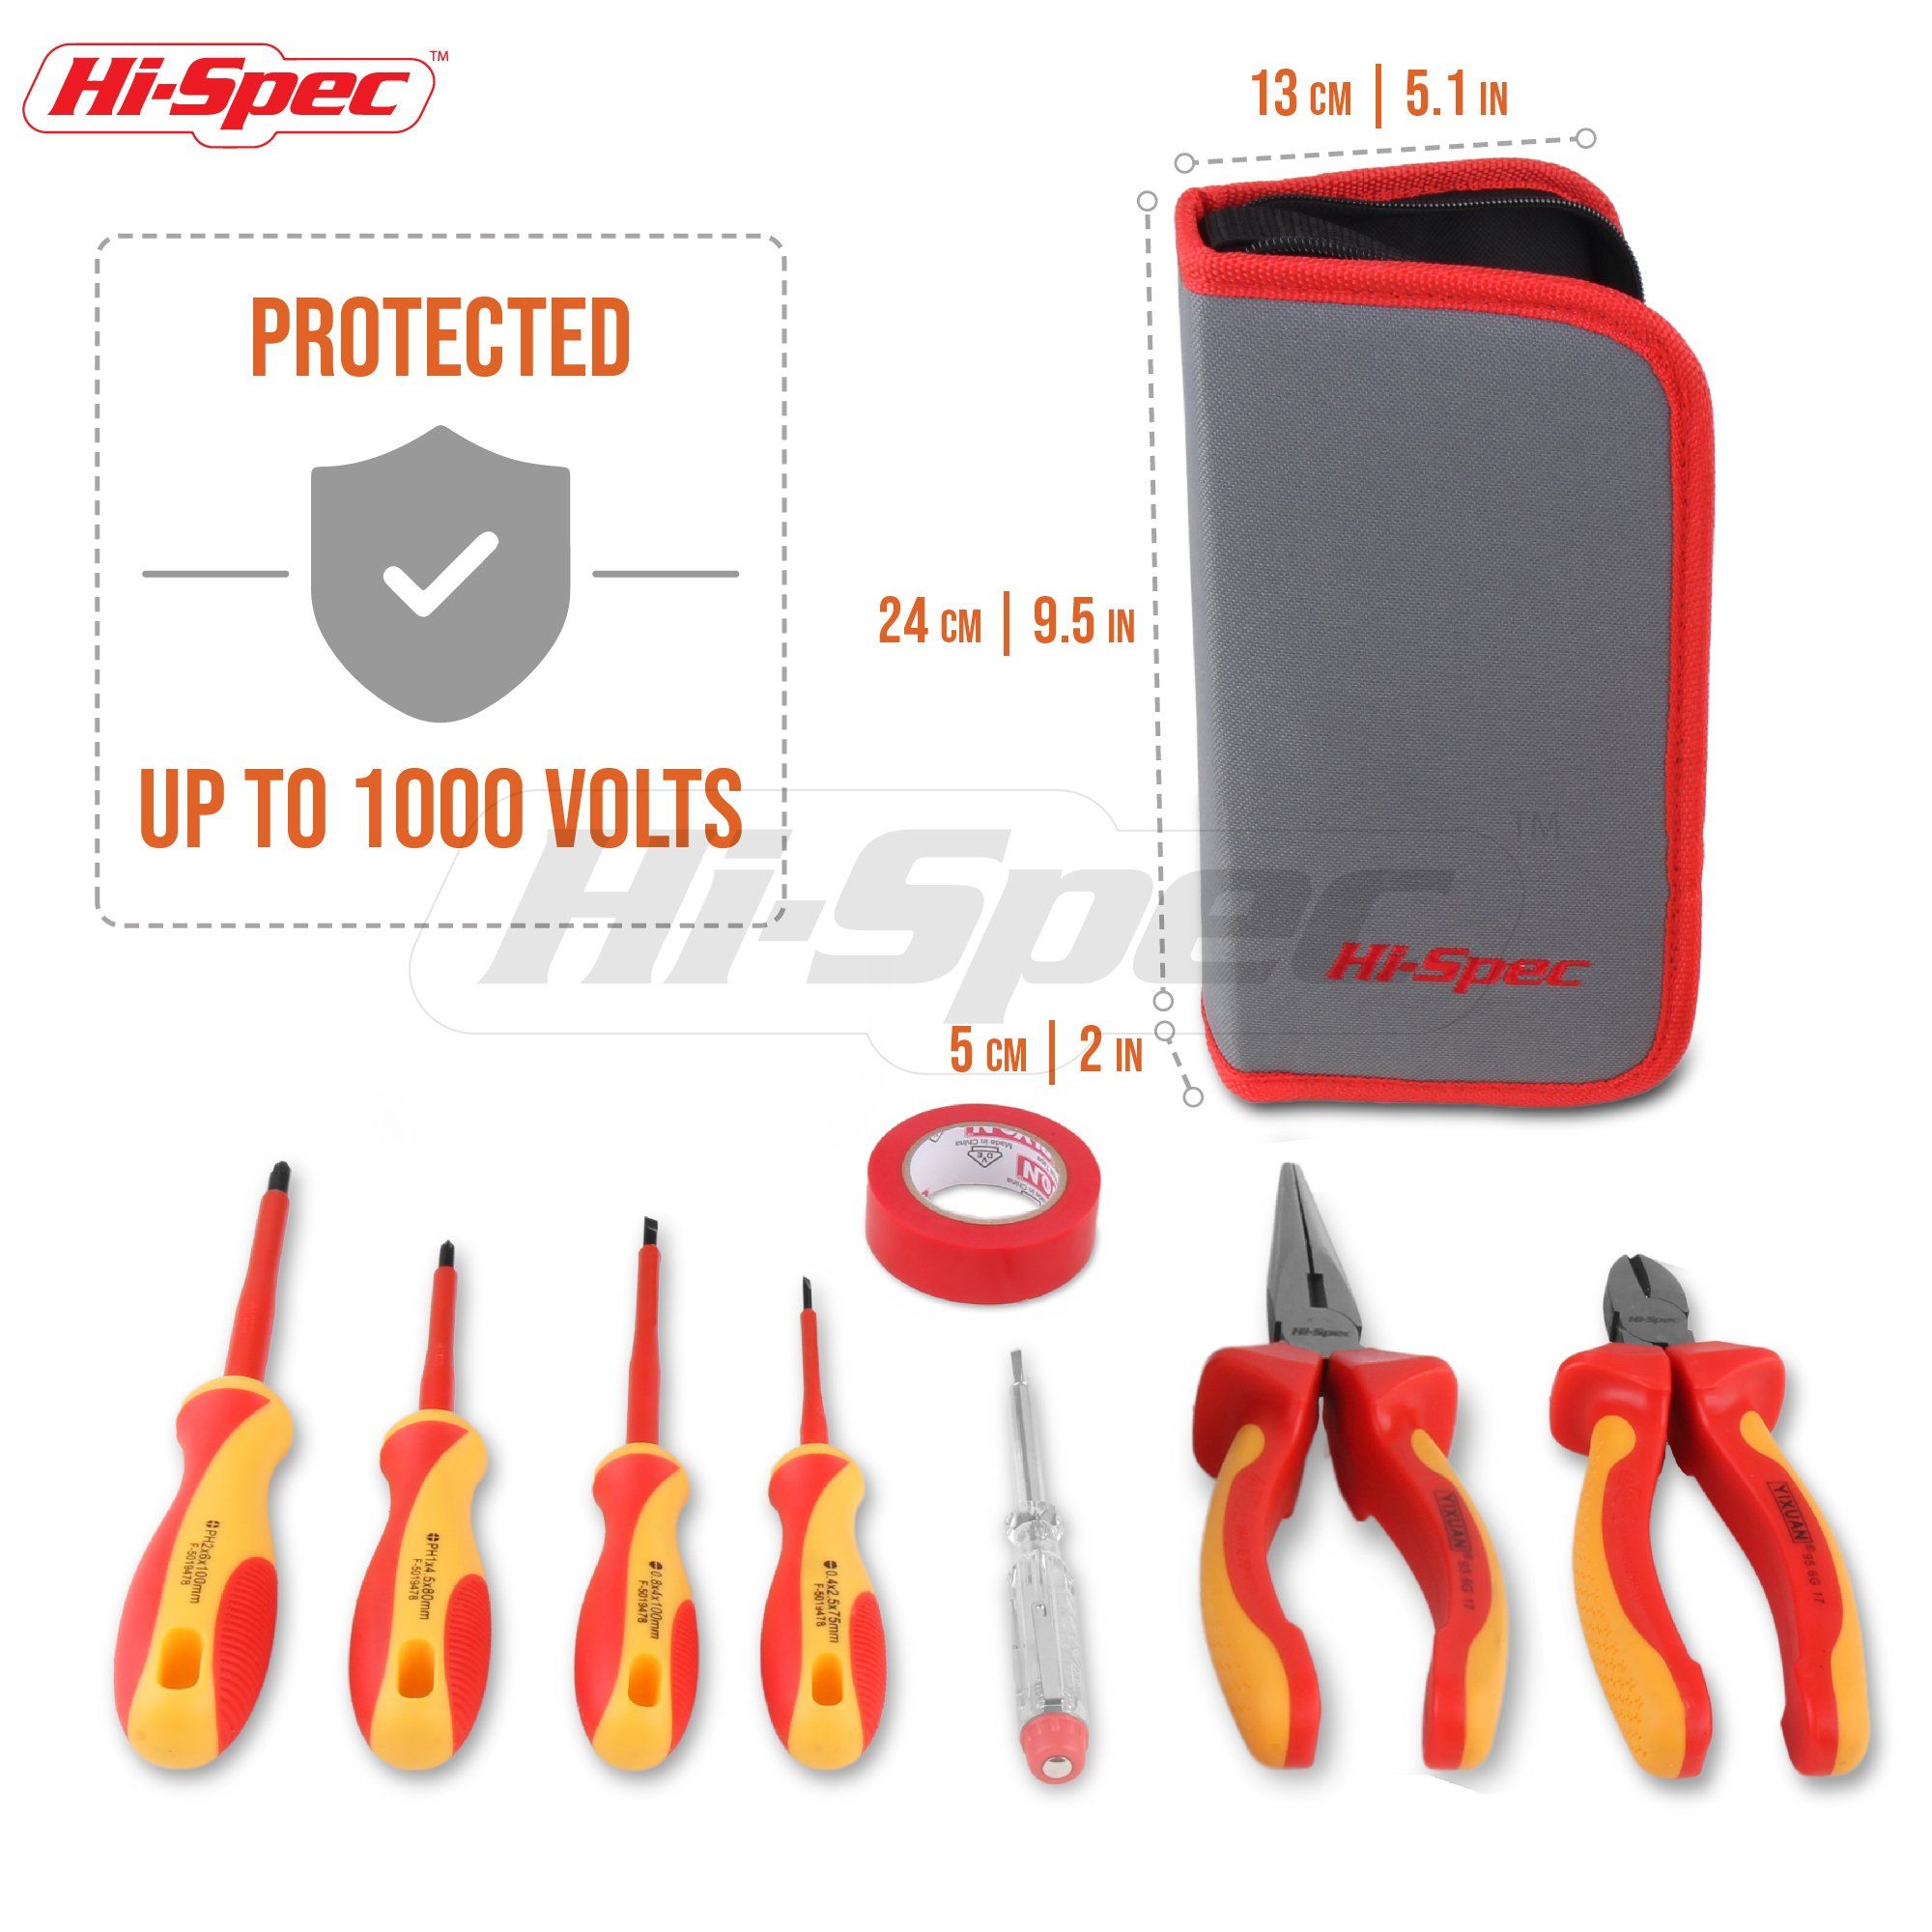 Hi-Spec 8 Piece Insulated Electrician Tool Set – 1000V VDE Approved Pliers, Slotted & Phillips Screwdrivers with S2 Steel Tips, Voltage Tester & Electrical Tape for DIY, Electrical Task, in Case by Hi-Spec (Image #2)